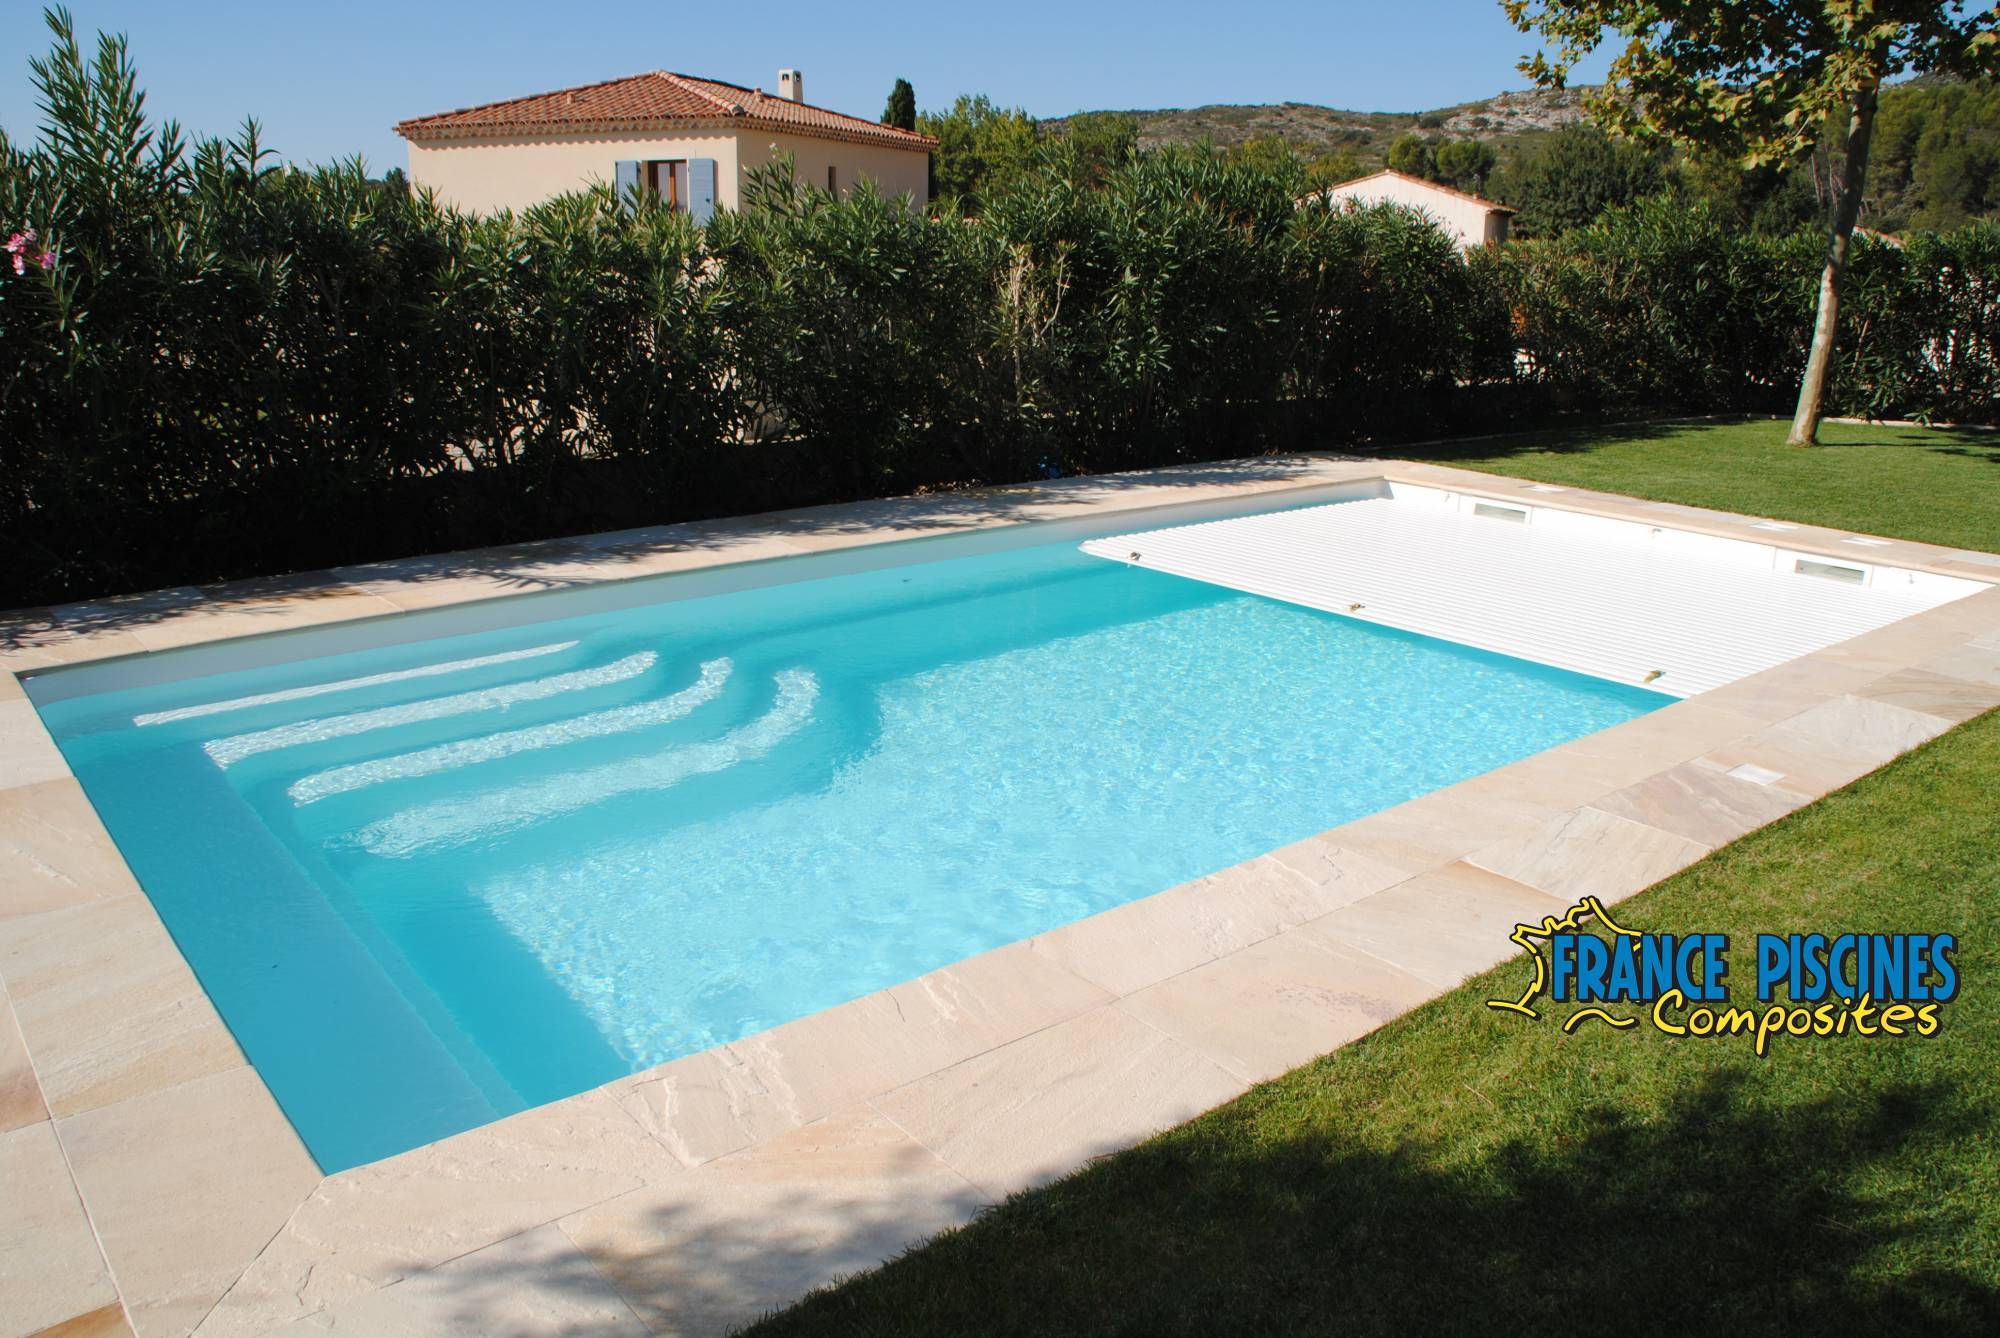 Vente et pose de piscine enterr e coque polyester for Provence piscine polyester